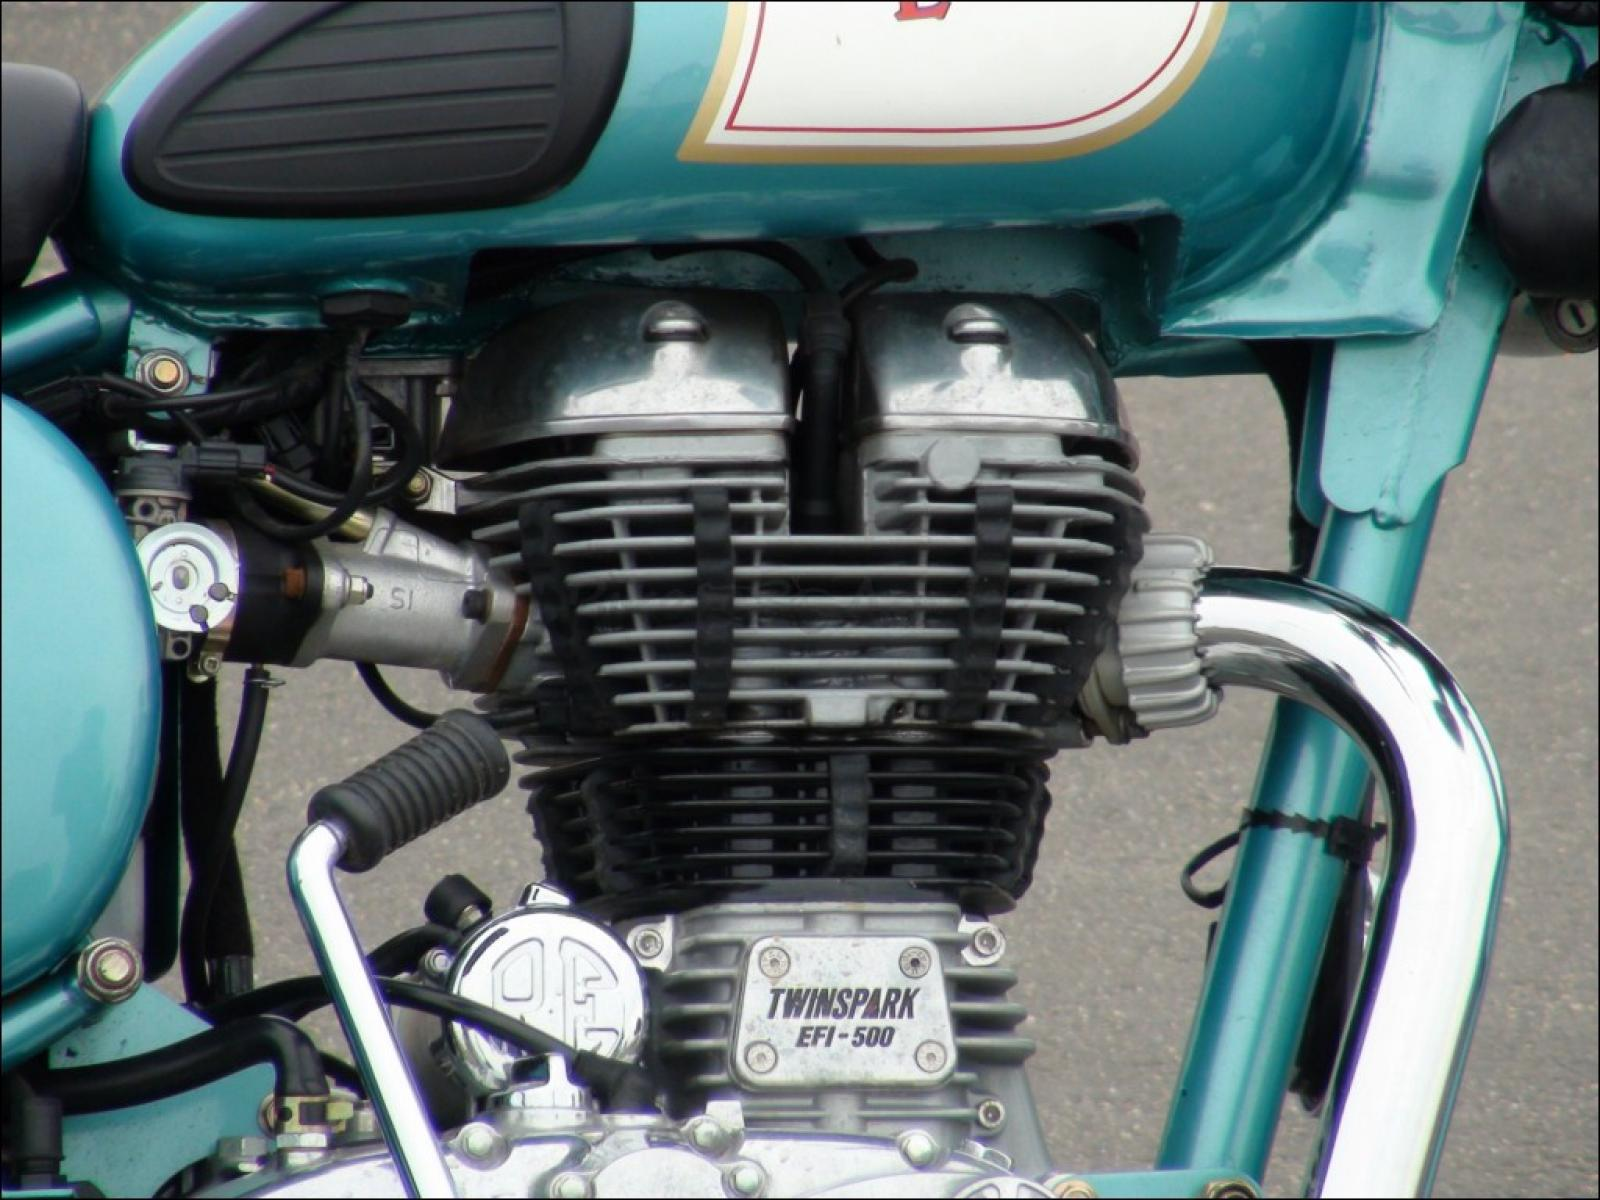 Enfield Euro Classic 500 #6